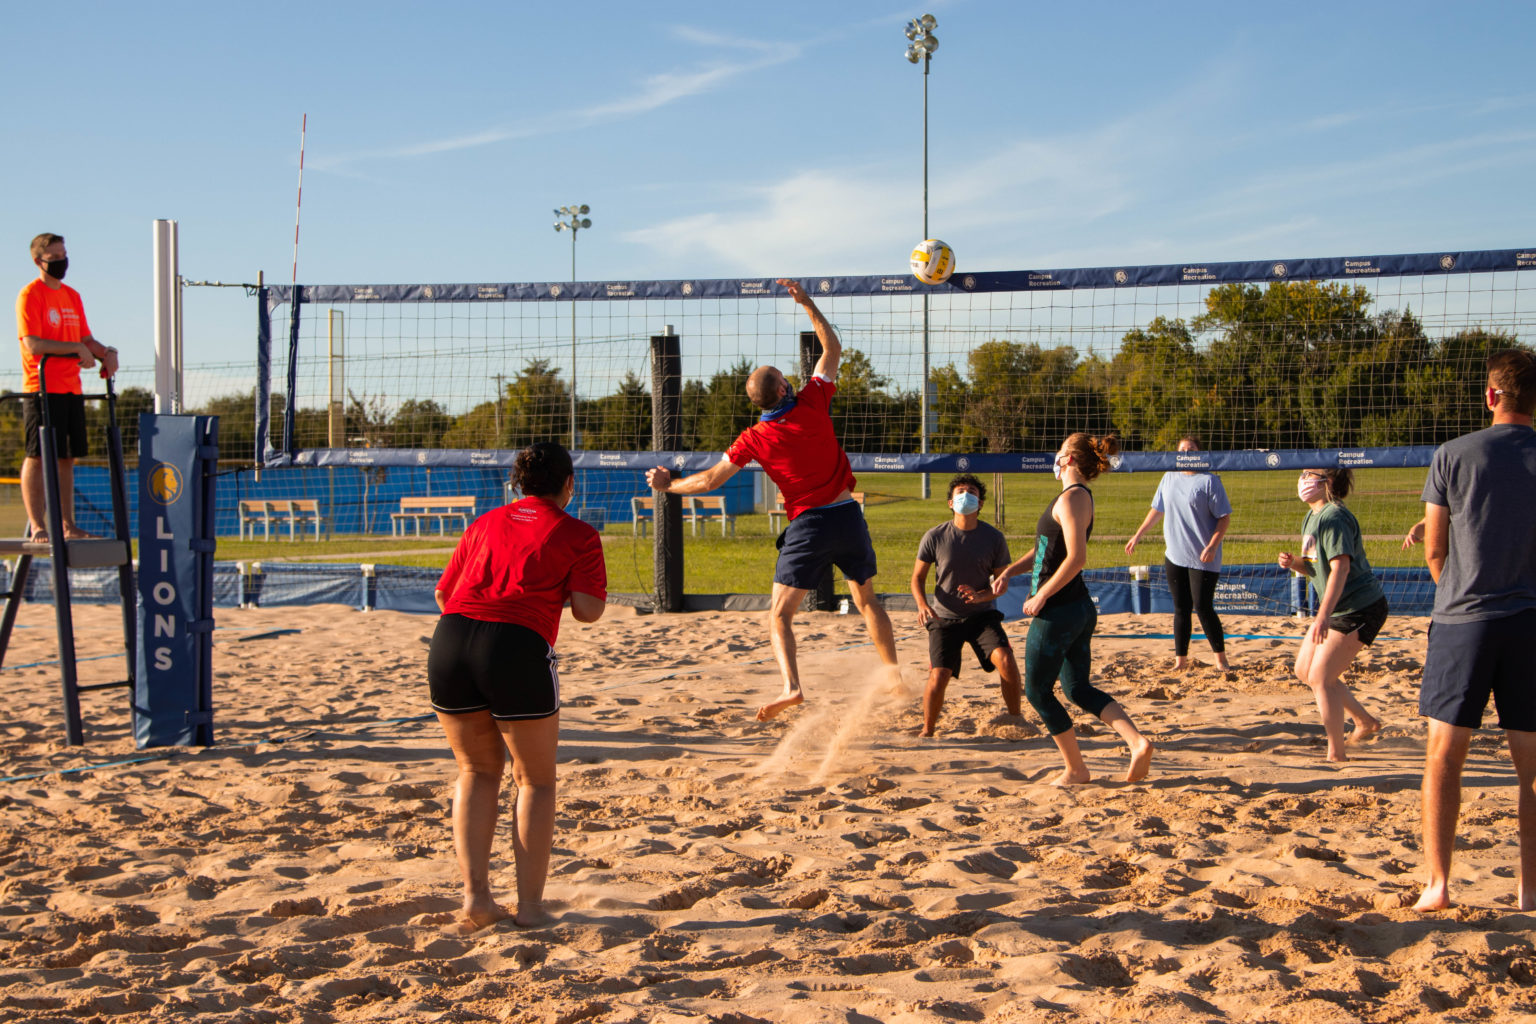 A group of people playing sand volleyball at the Cain Sports Complex.